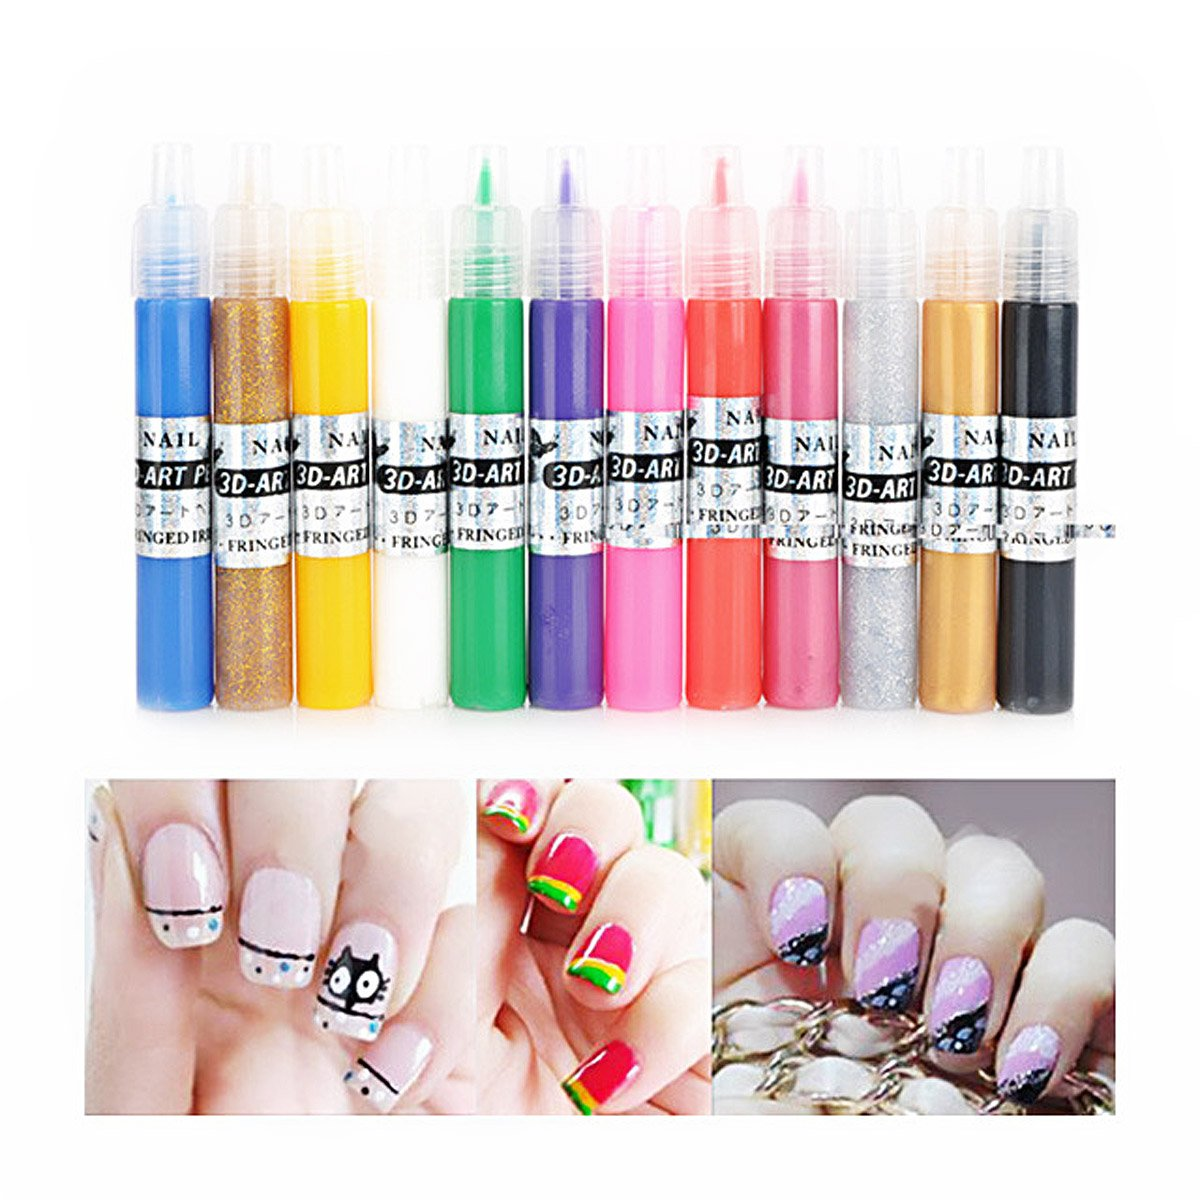 Tinksky 12 Colors Uv Gel Acrylic Tips 3d Nail Art Diy Painting